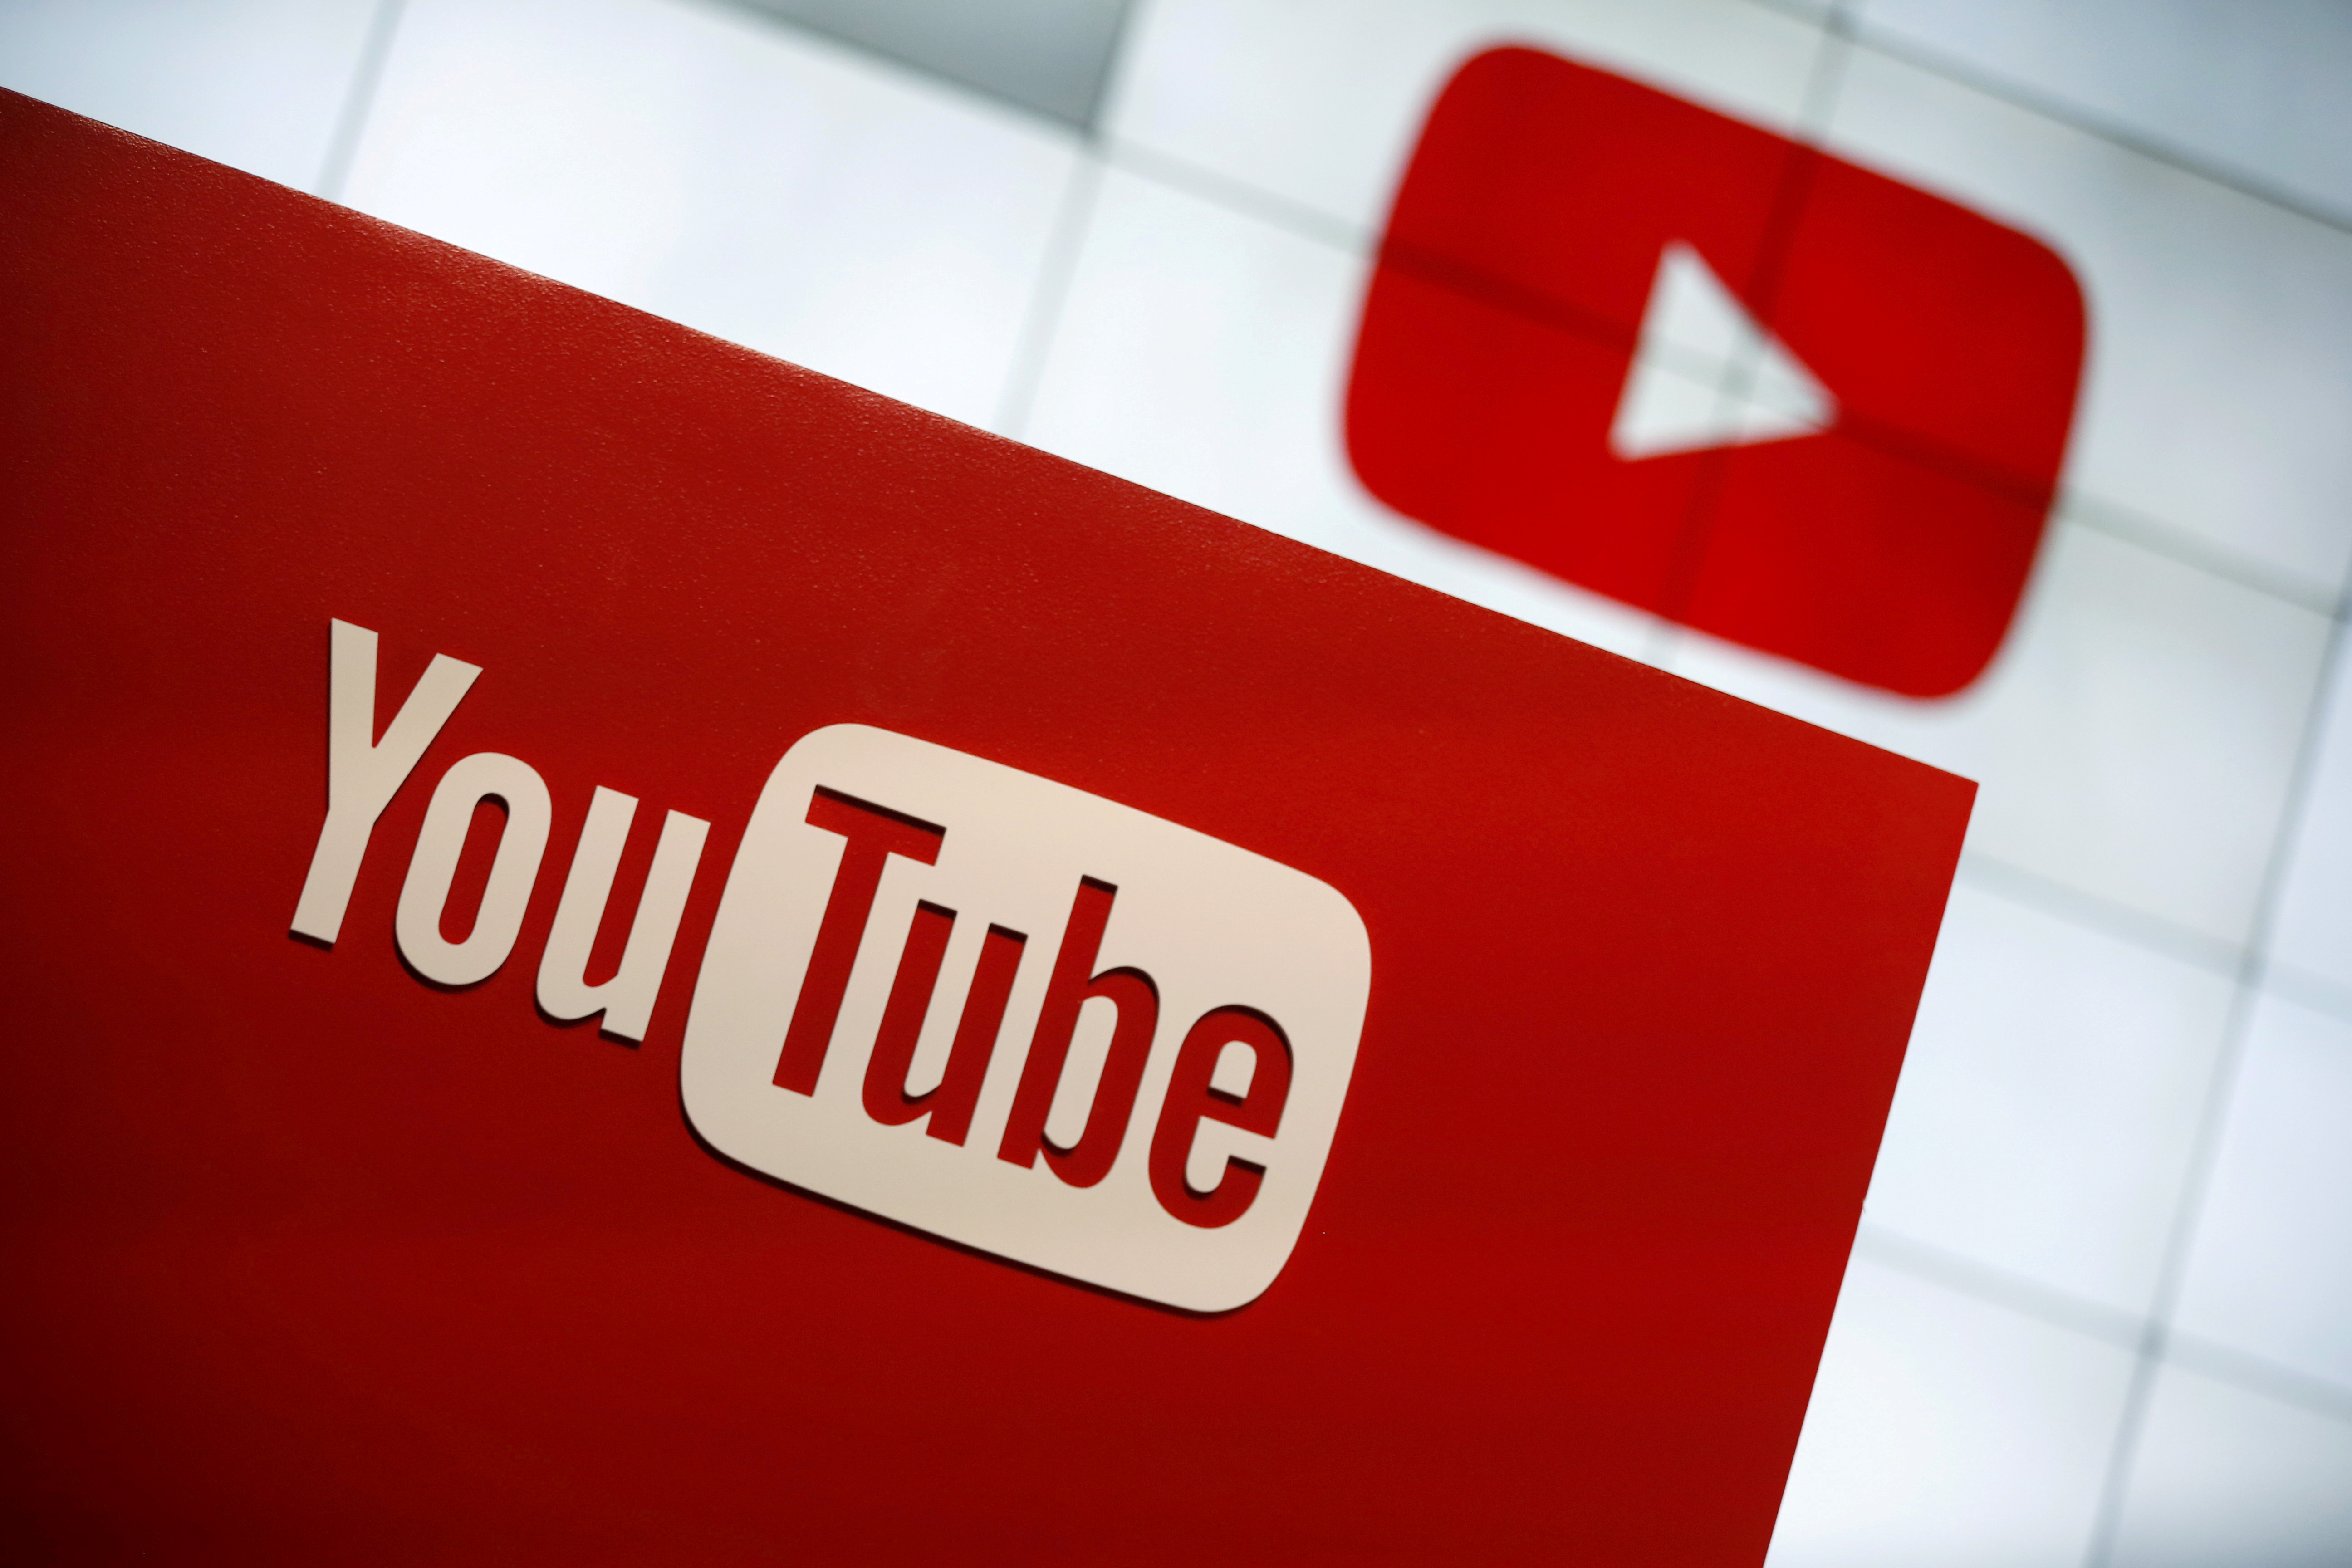 YouTube logo at the YouTube Space LA in Playa Del Rey, Los Angeles, California, United States October 21, 2015. REUTERS/Lucy Nicholson